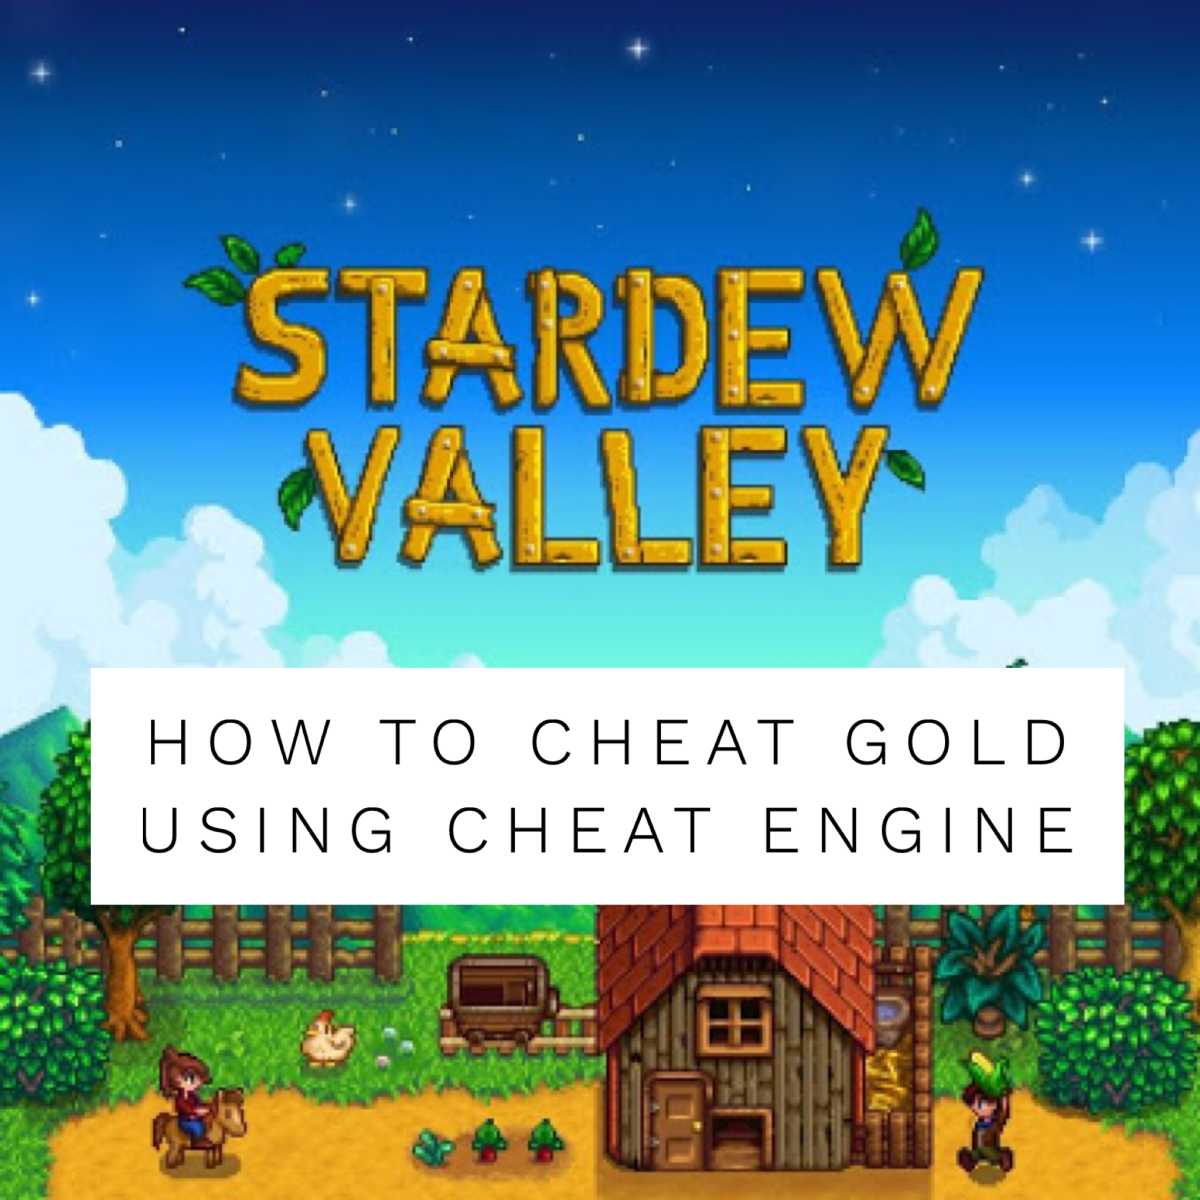 How to Cheat Gold in